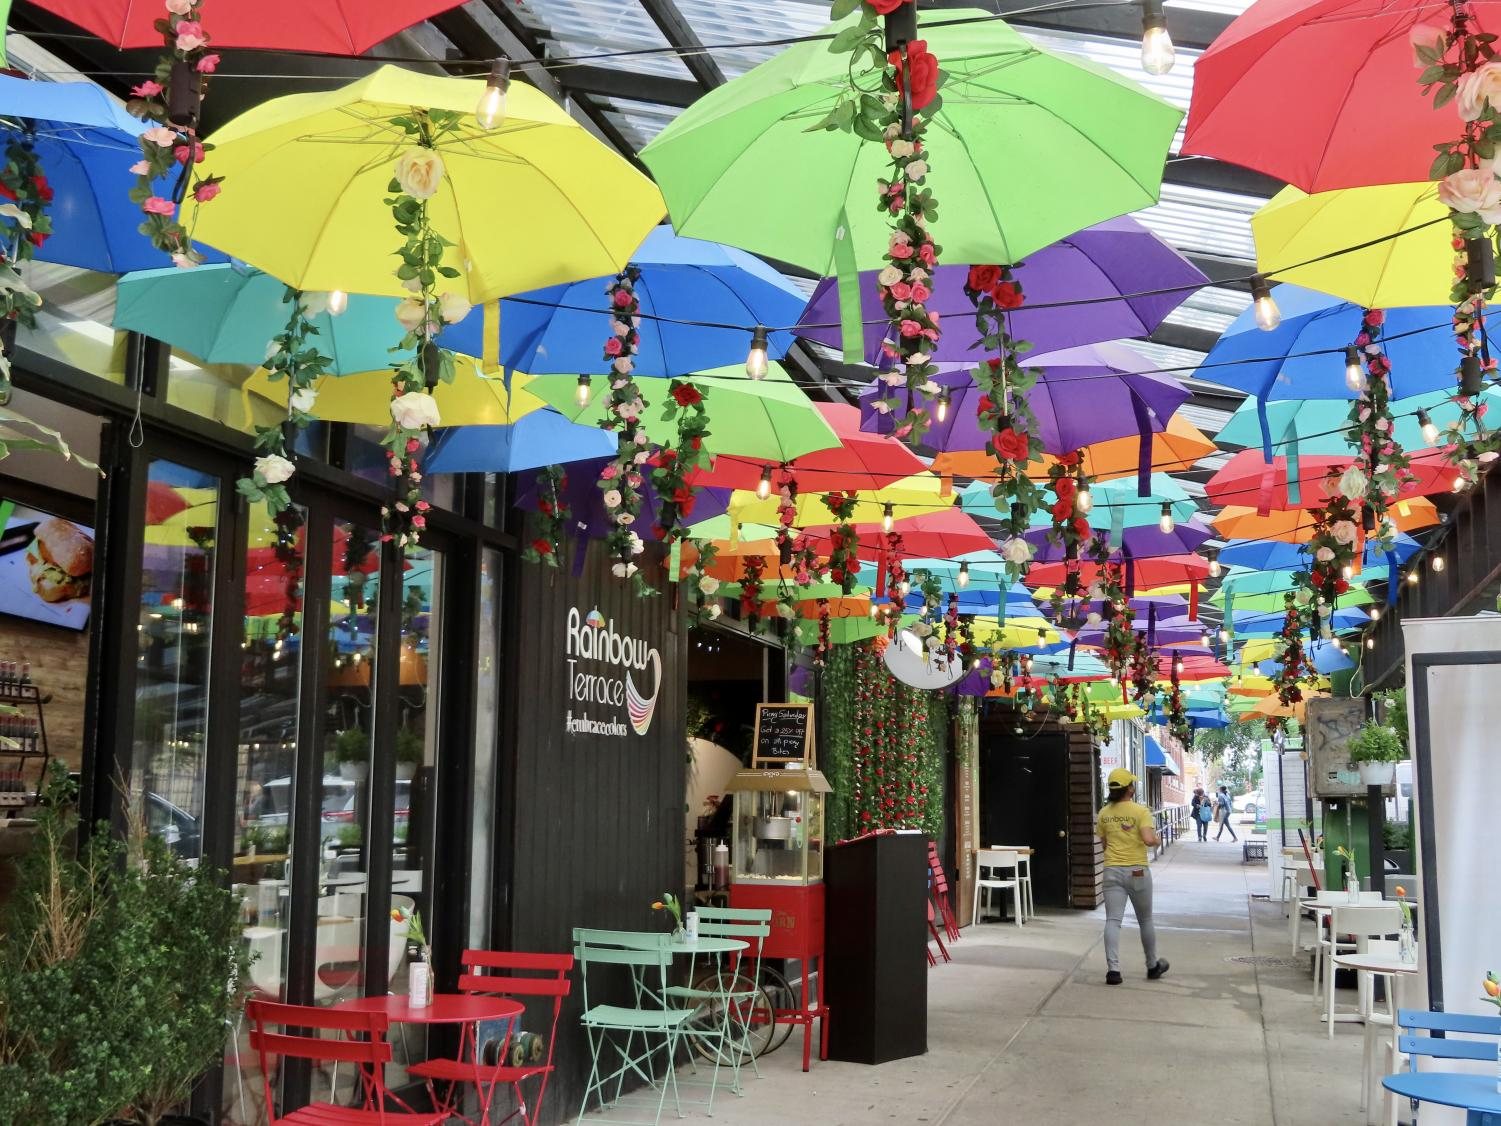 a restaurant called the Rainbow Terrace is pictured from the outside, with many umbrellas over outdoor seating